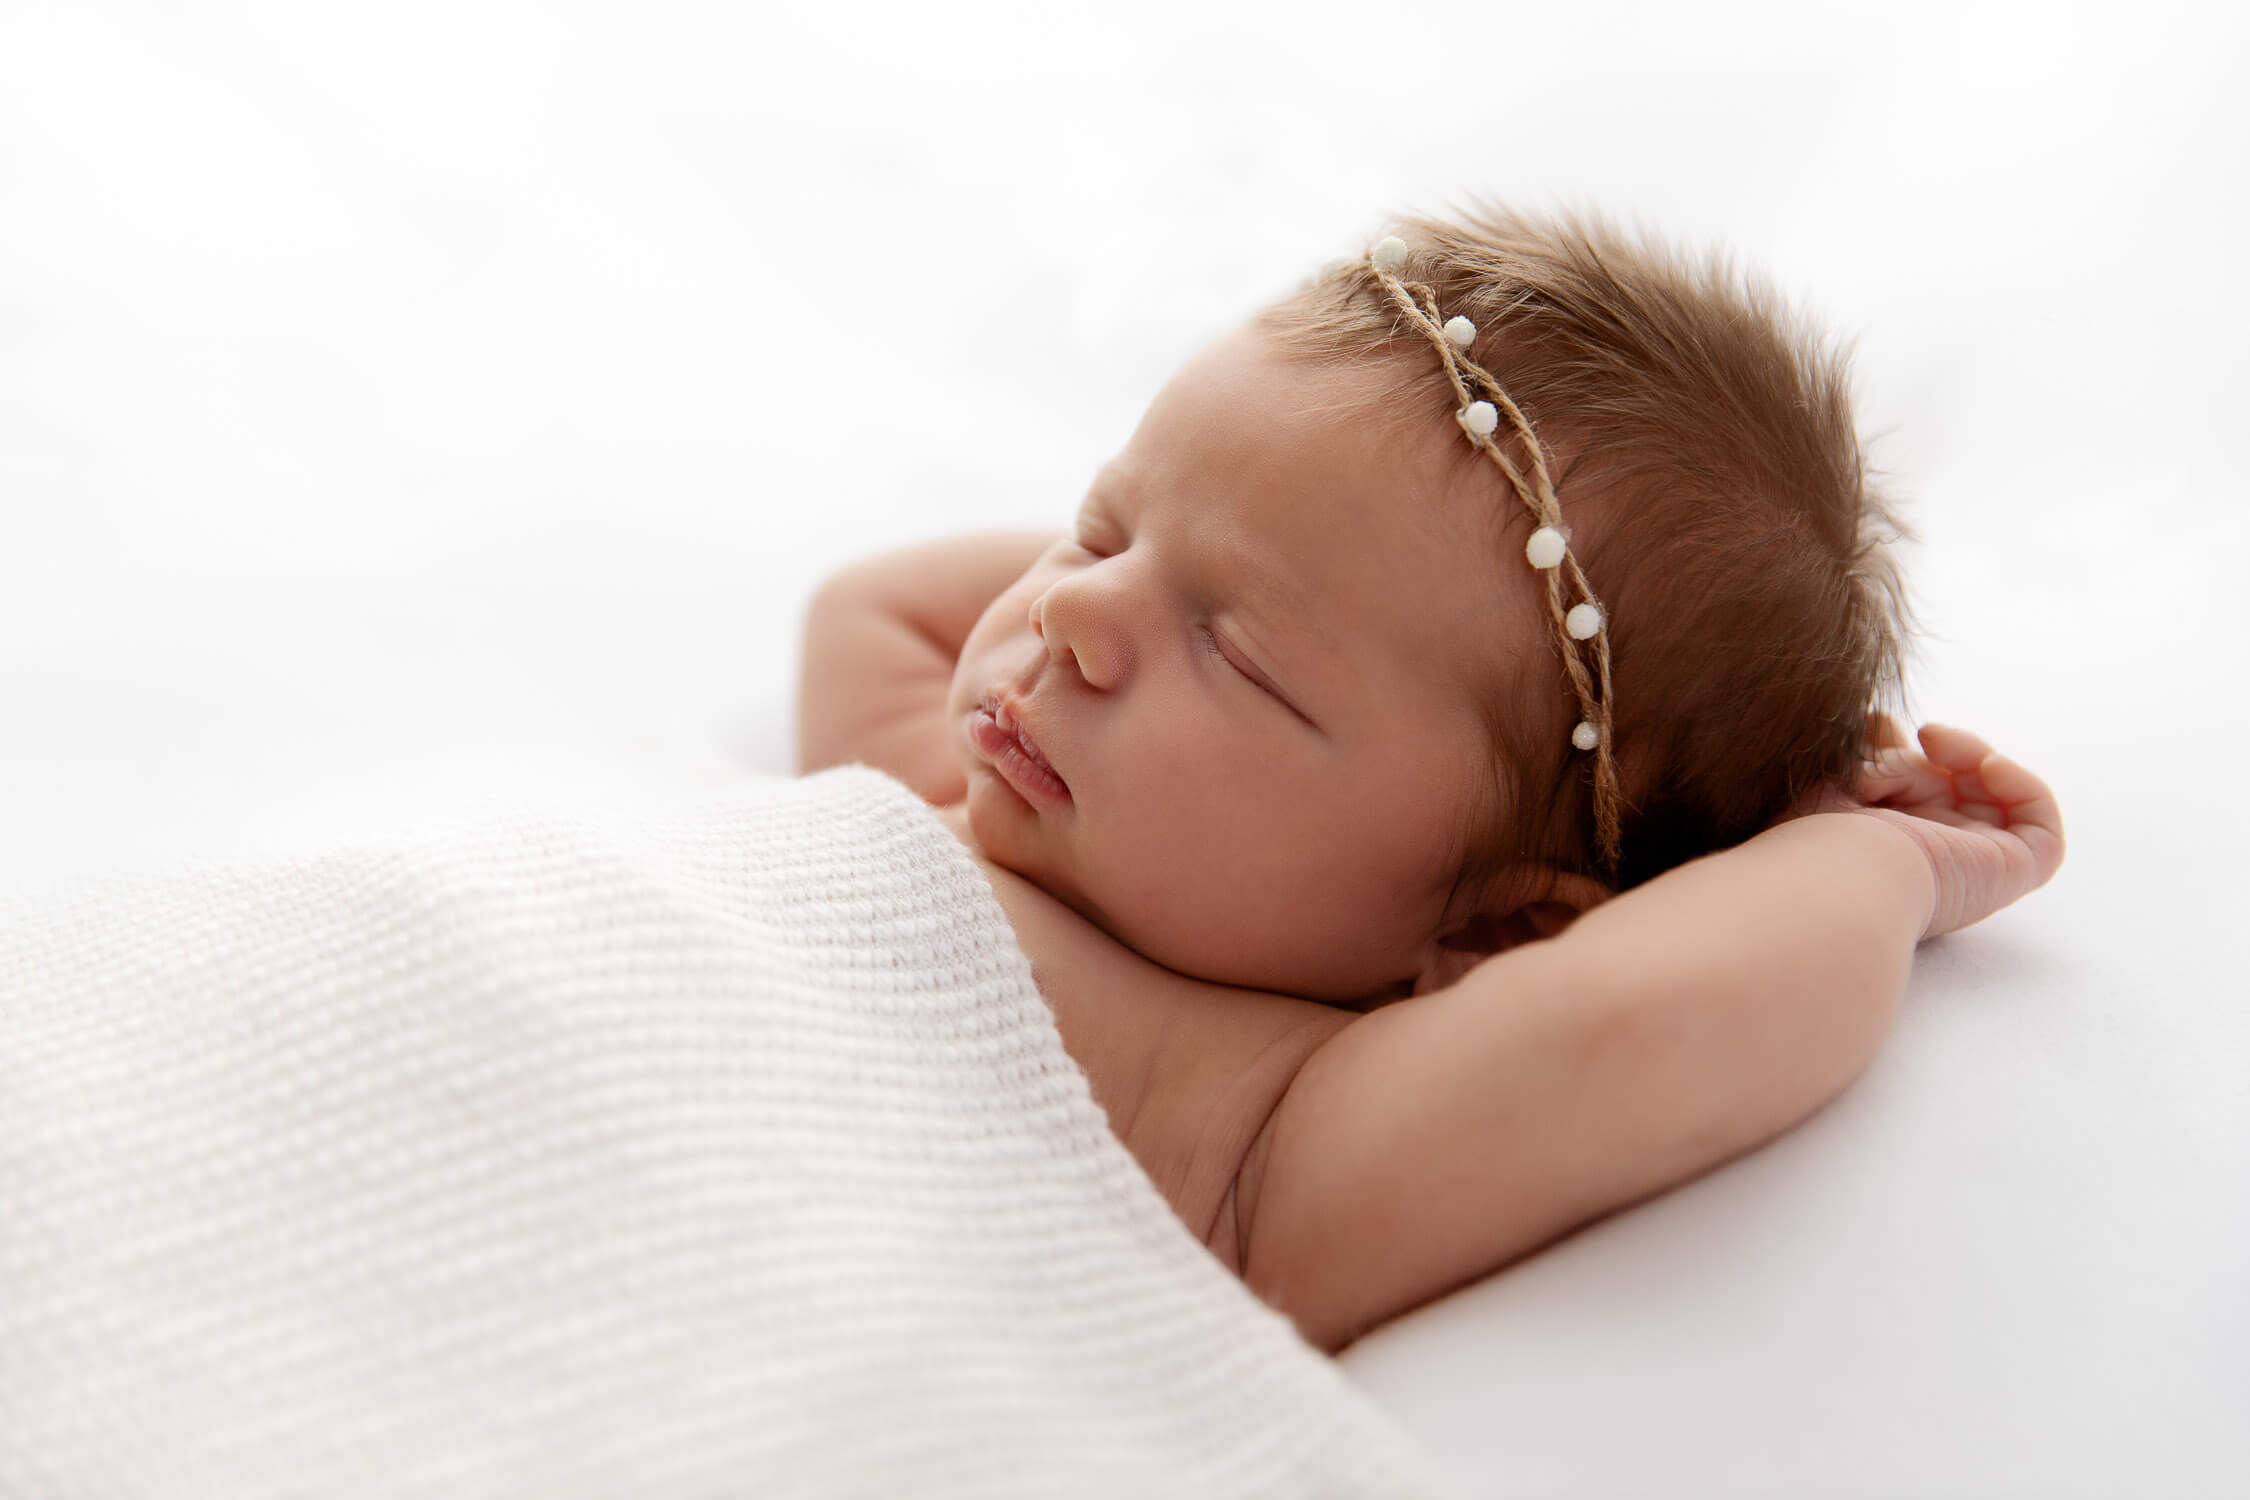 backlit newborn baby girl sleeping under a white blanket with arms over head